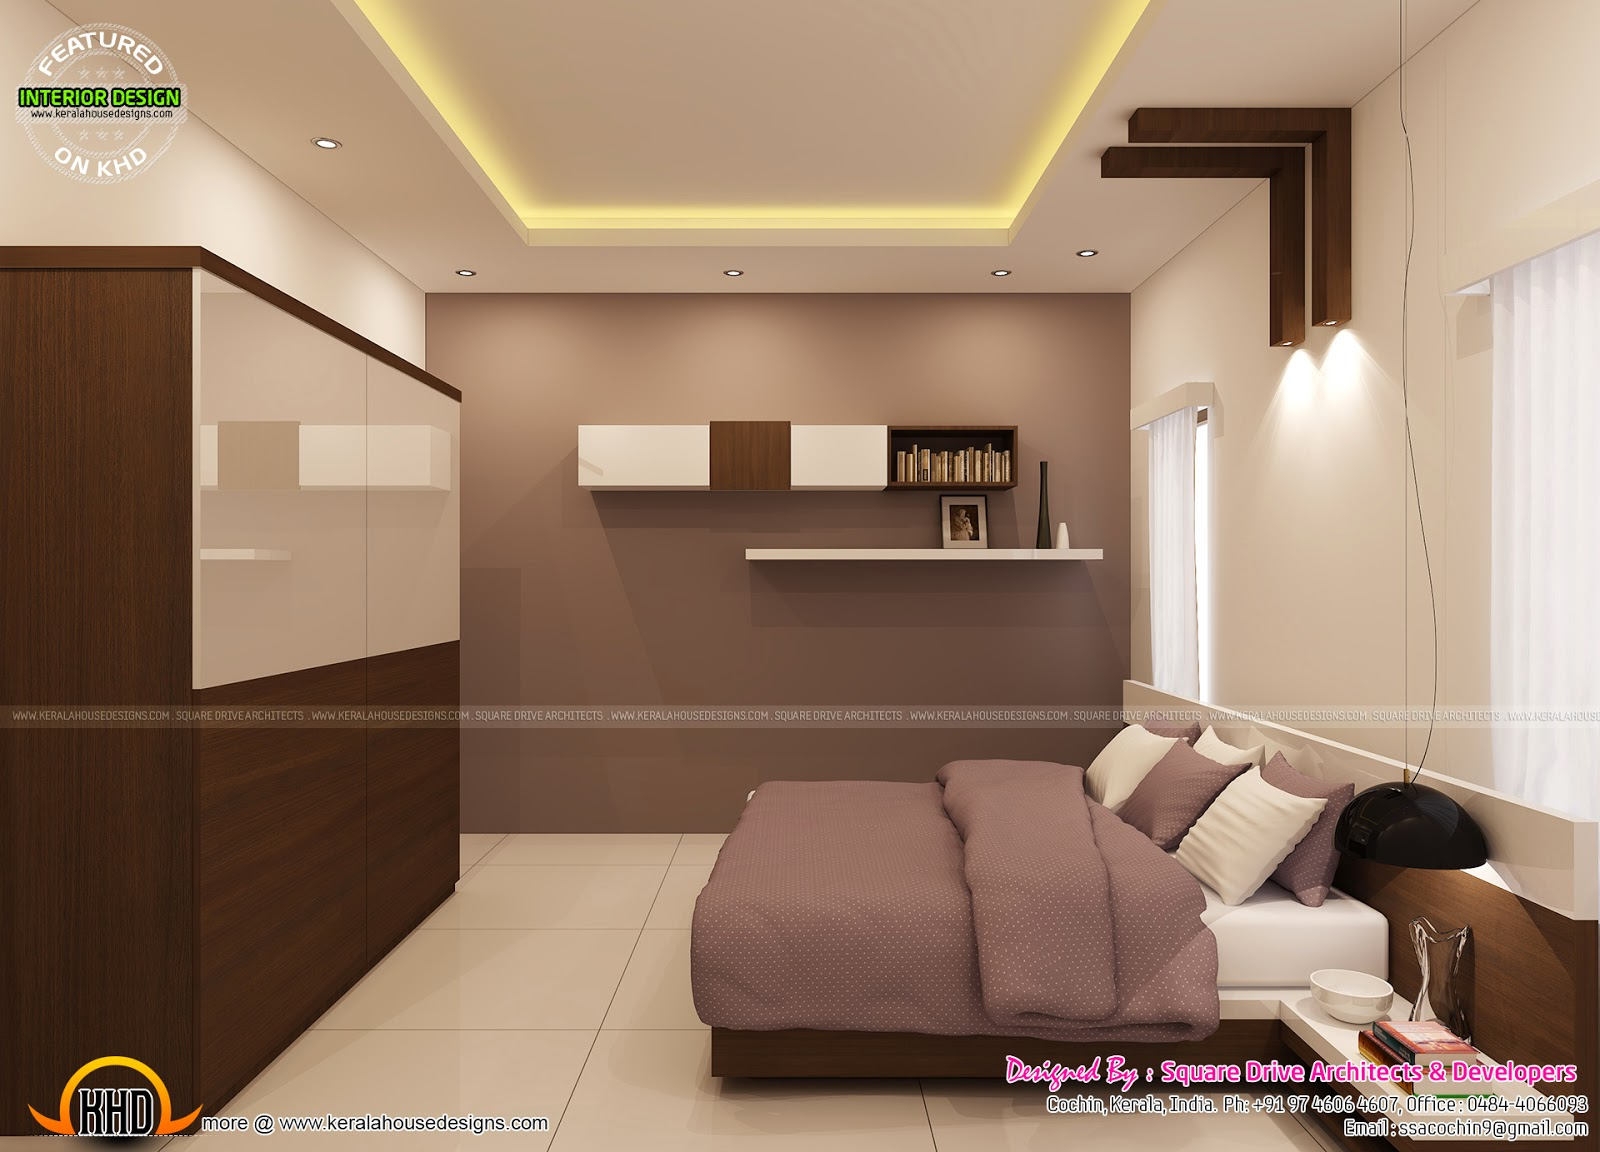 Bedroom interior decoration kerala home design and floor for Interior decoration bedroom photos